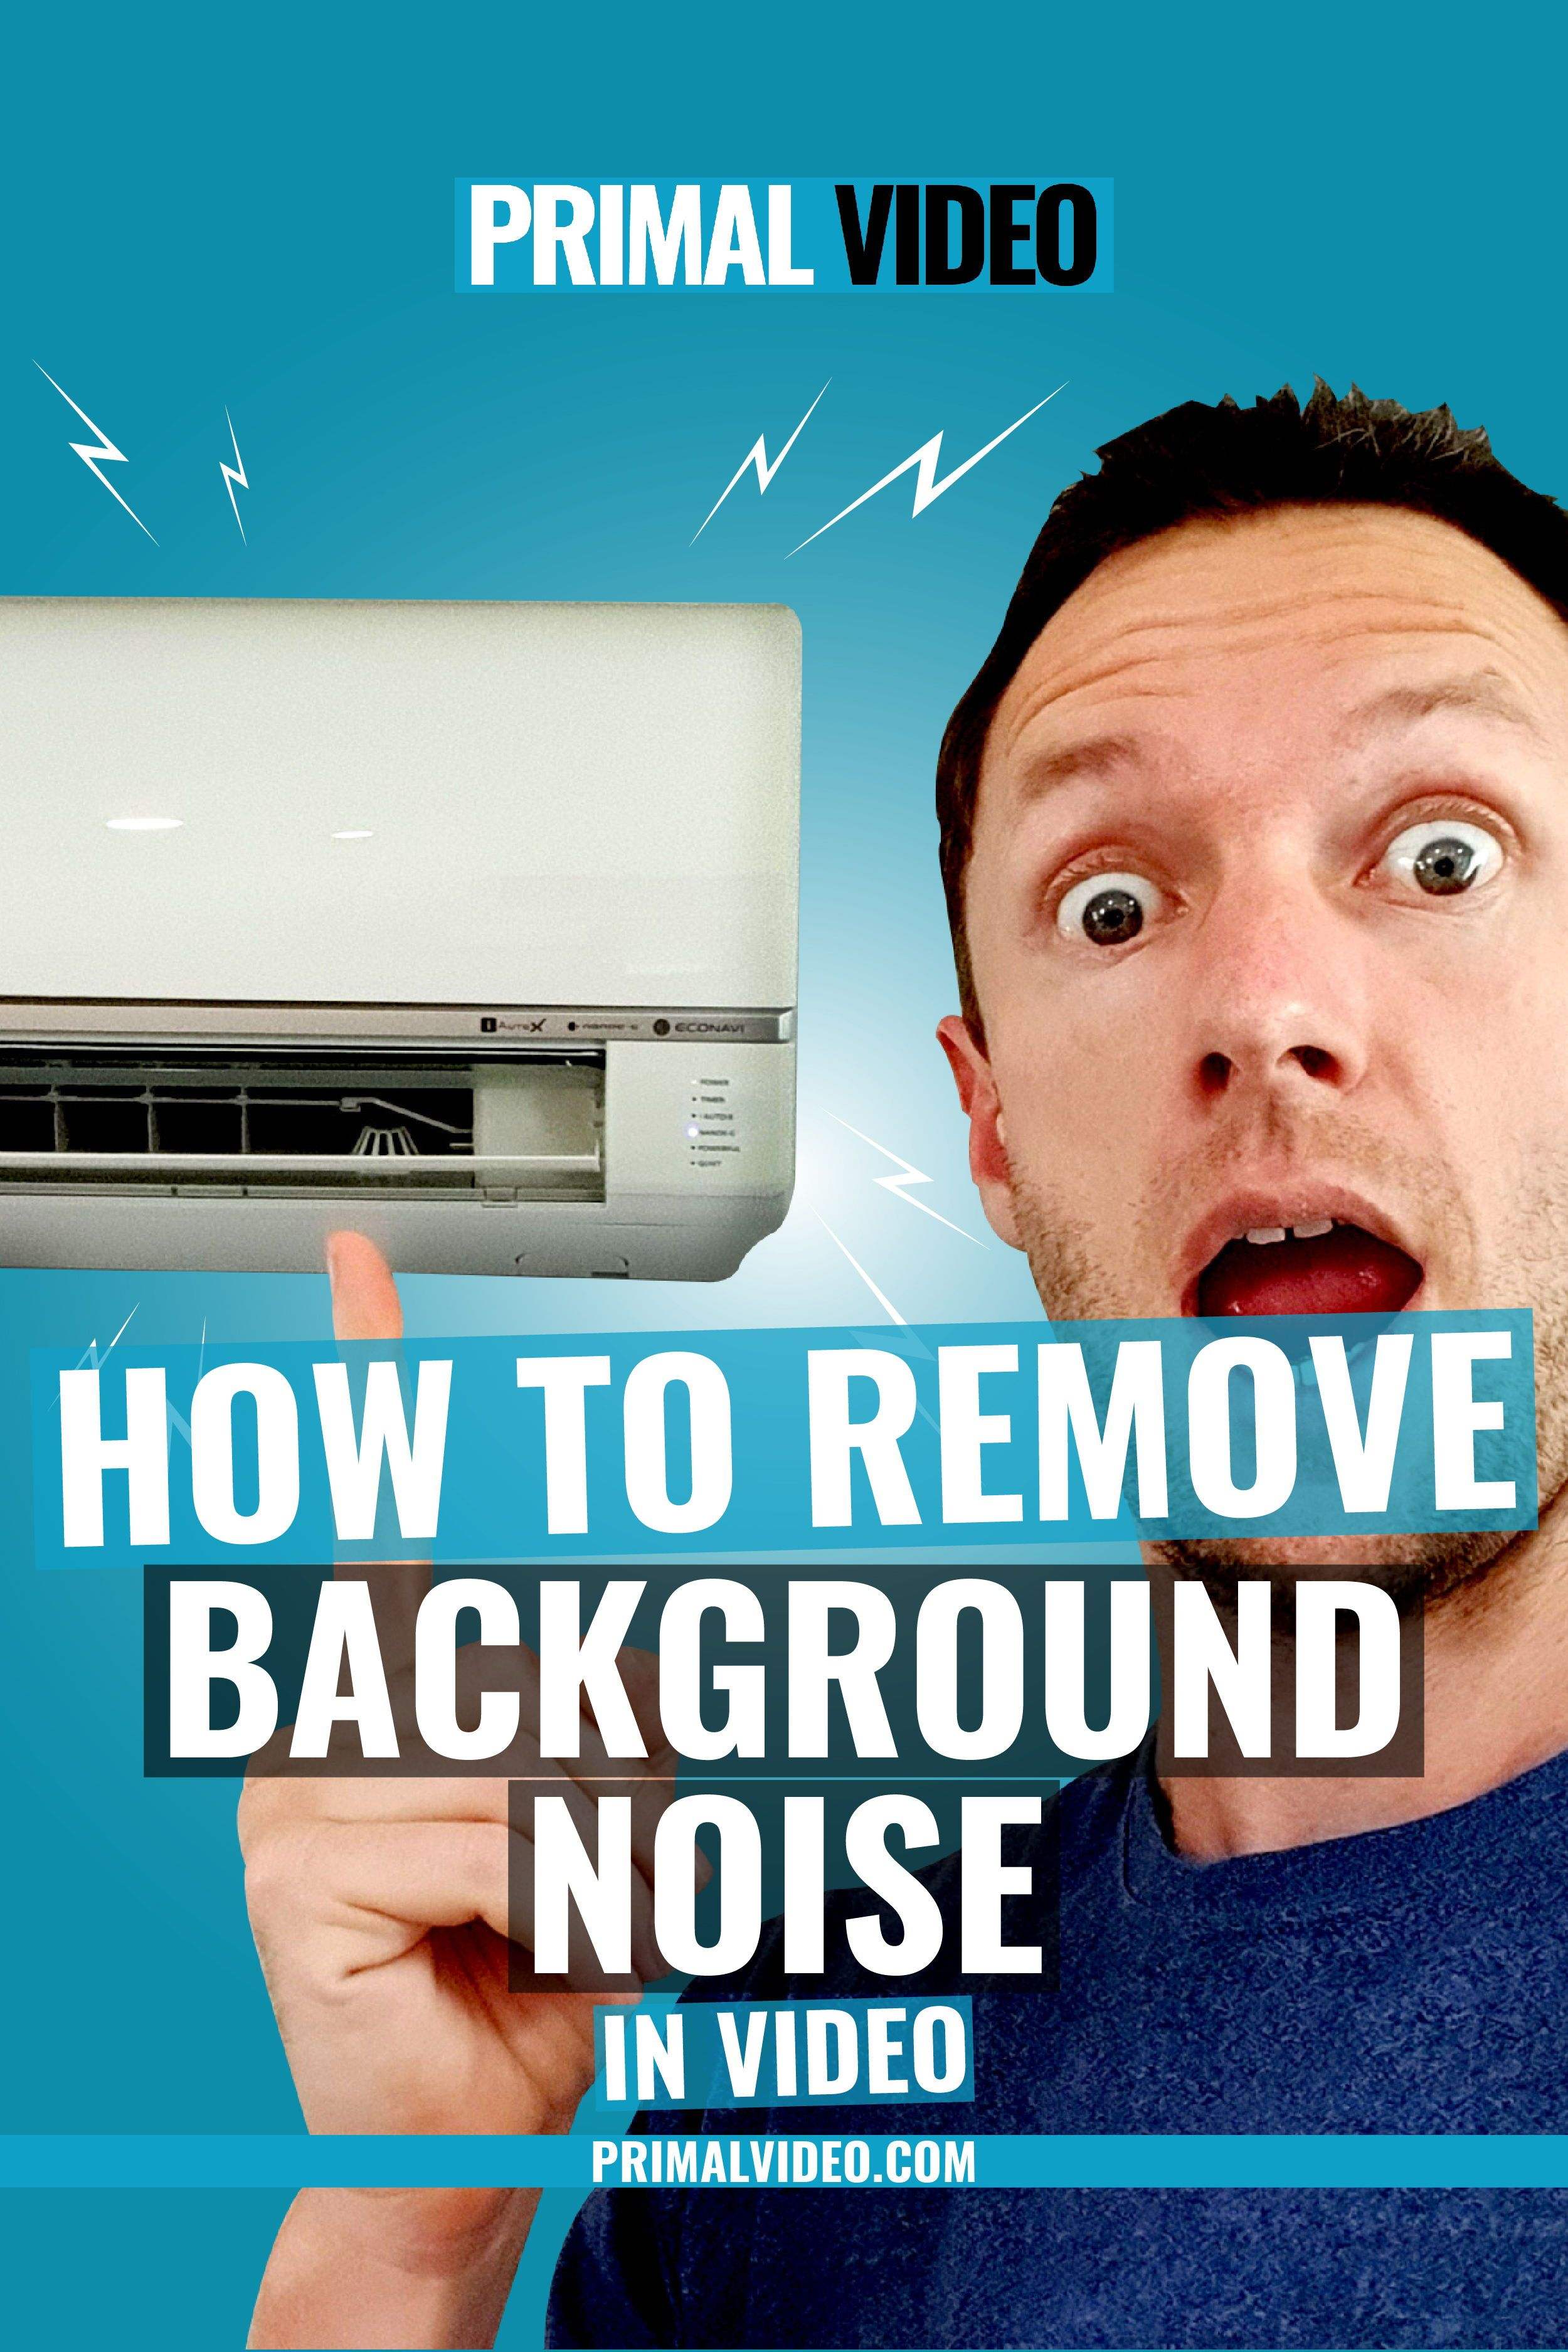 Left an aircon on while filming? Find out how to remove